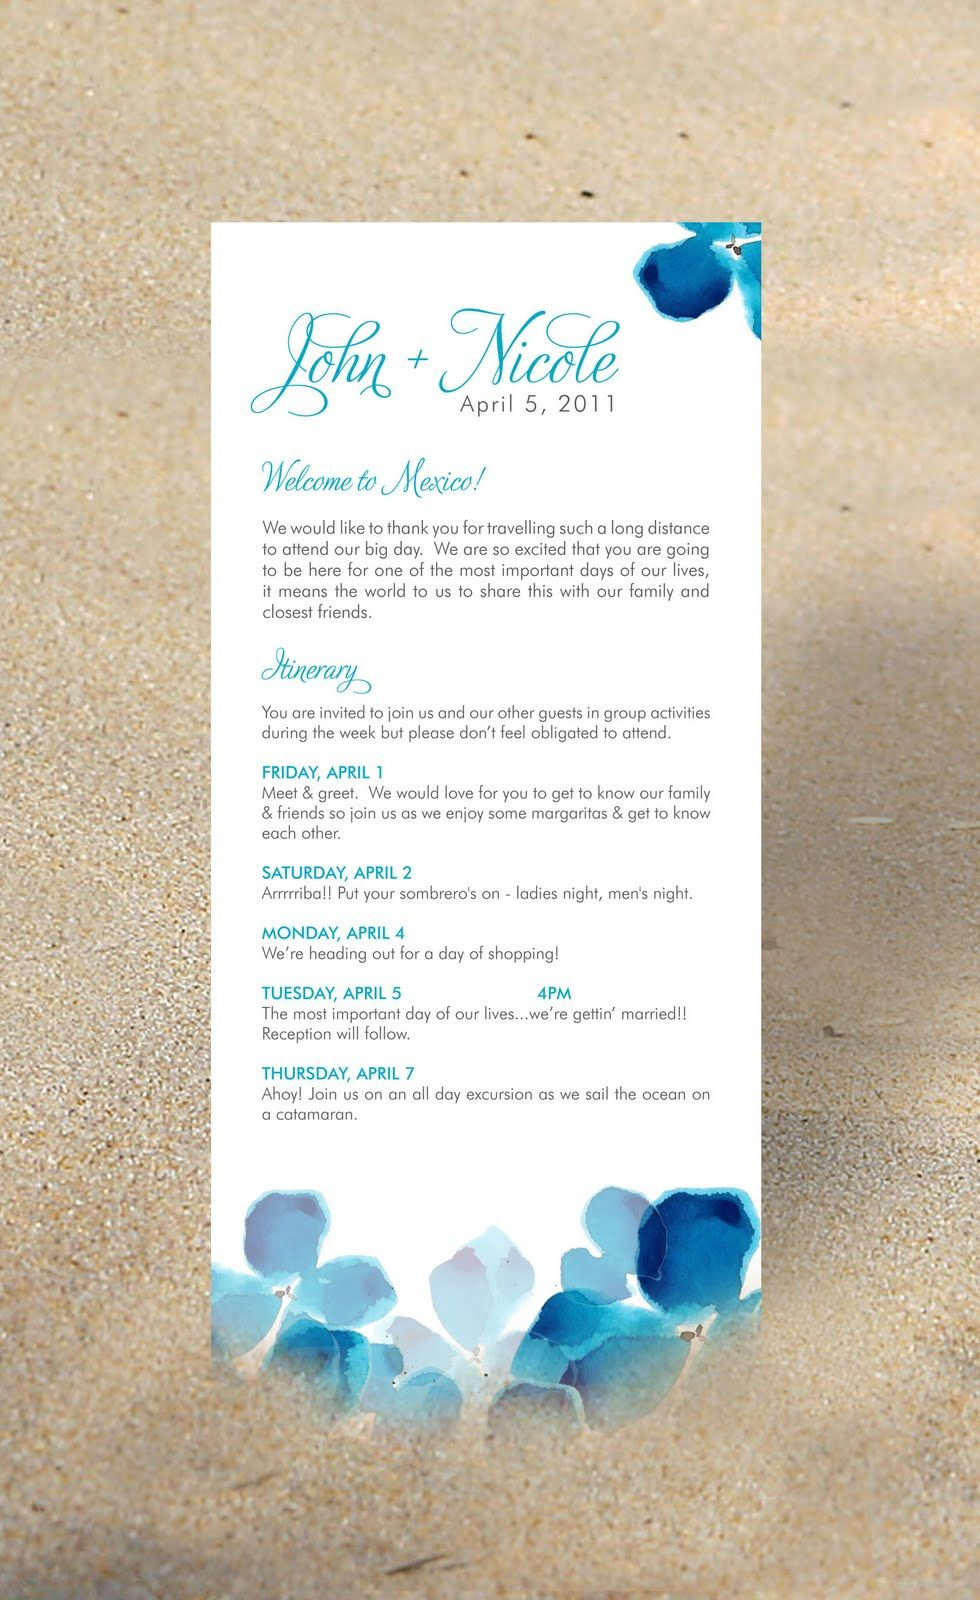 Destination Wedding Itinerary Ideas For Guests